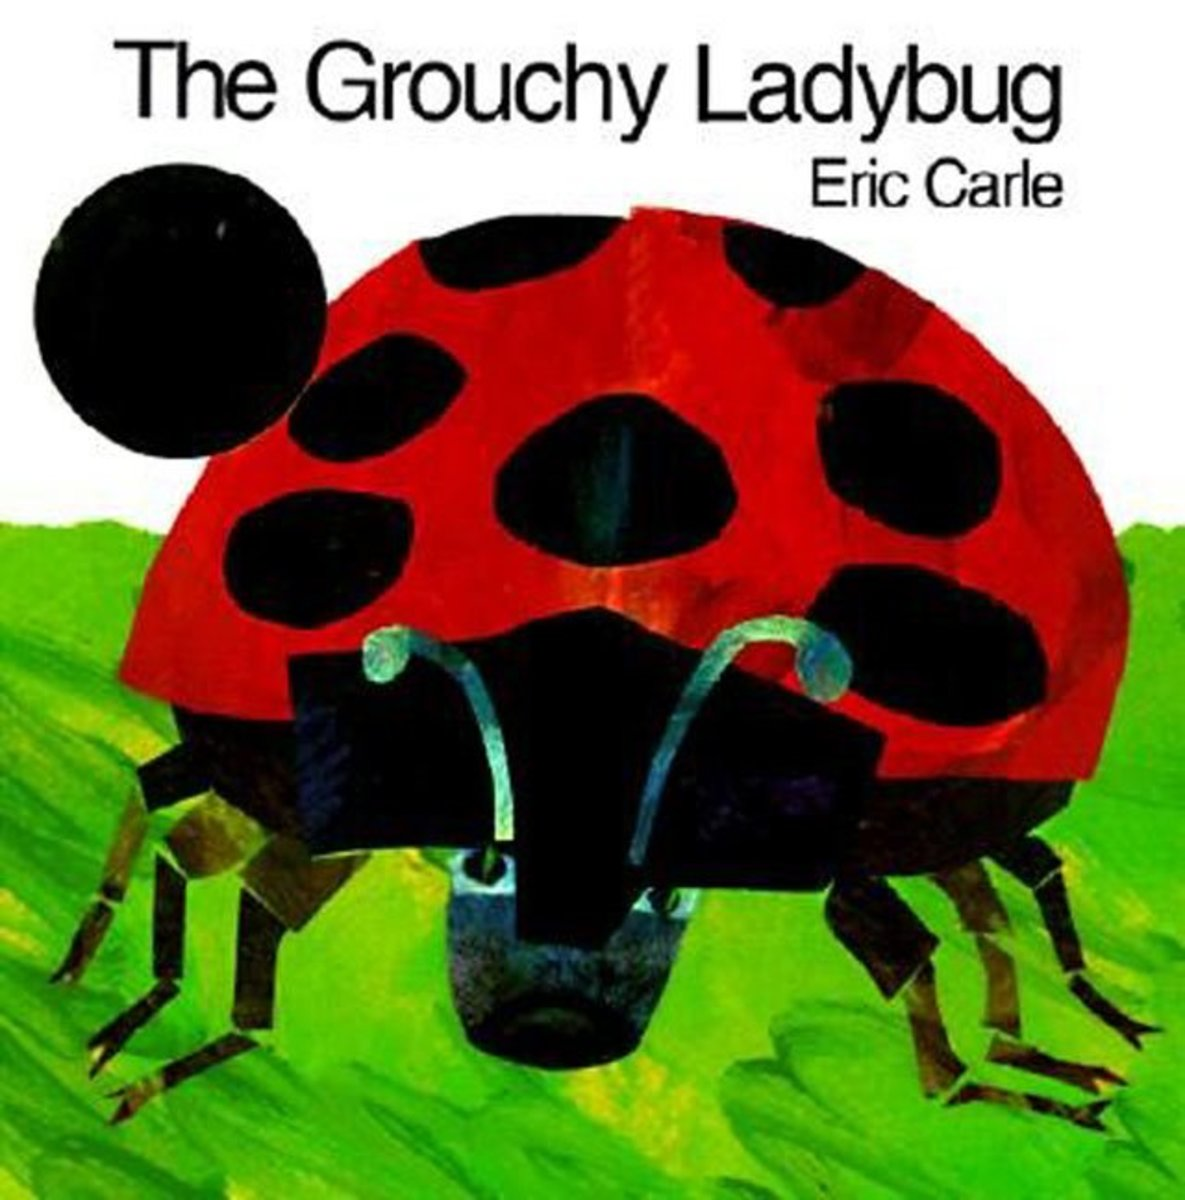 the grouchy ladybug by eric carle children s book review and